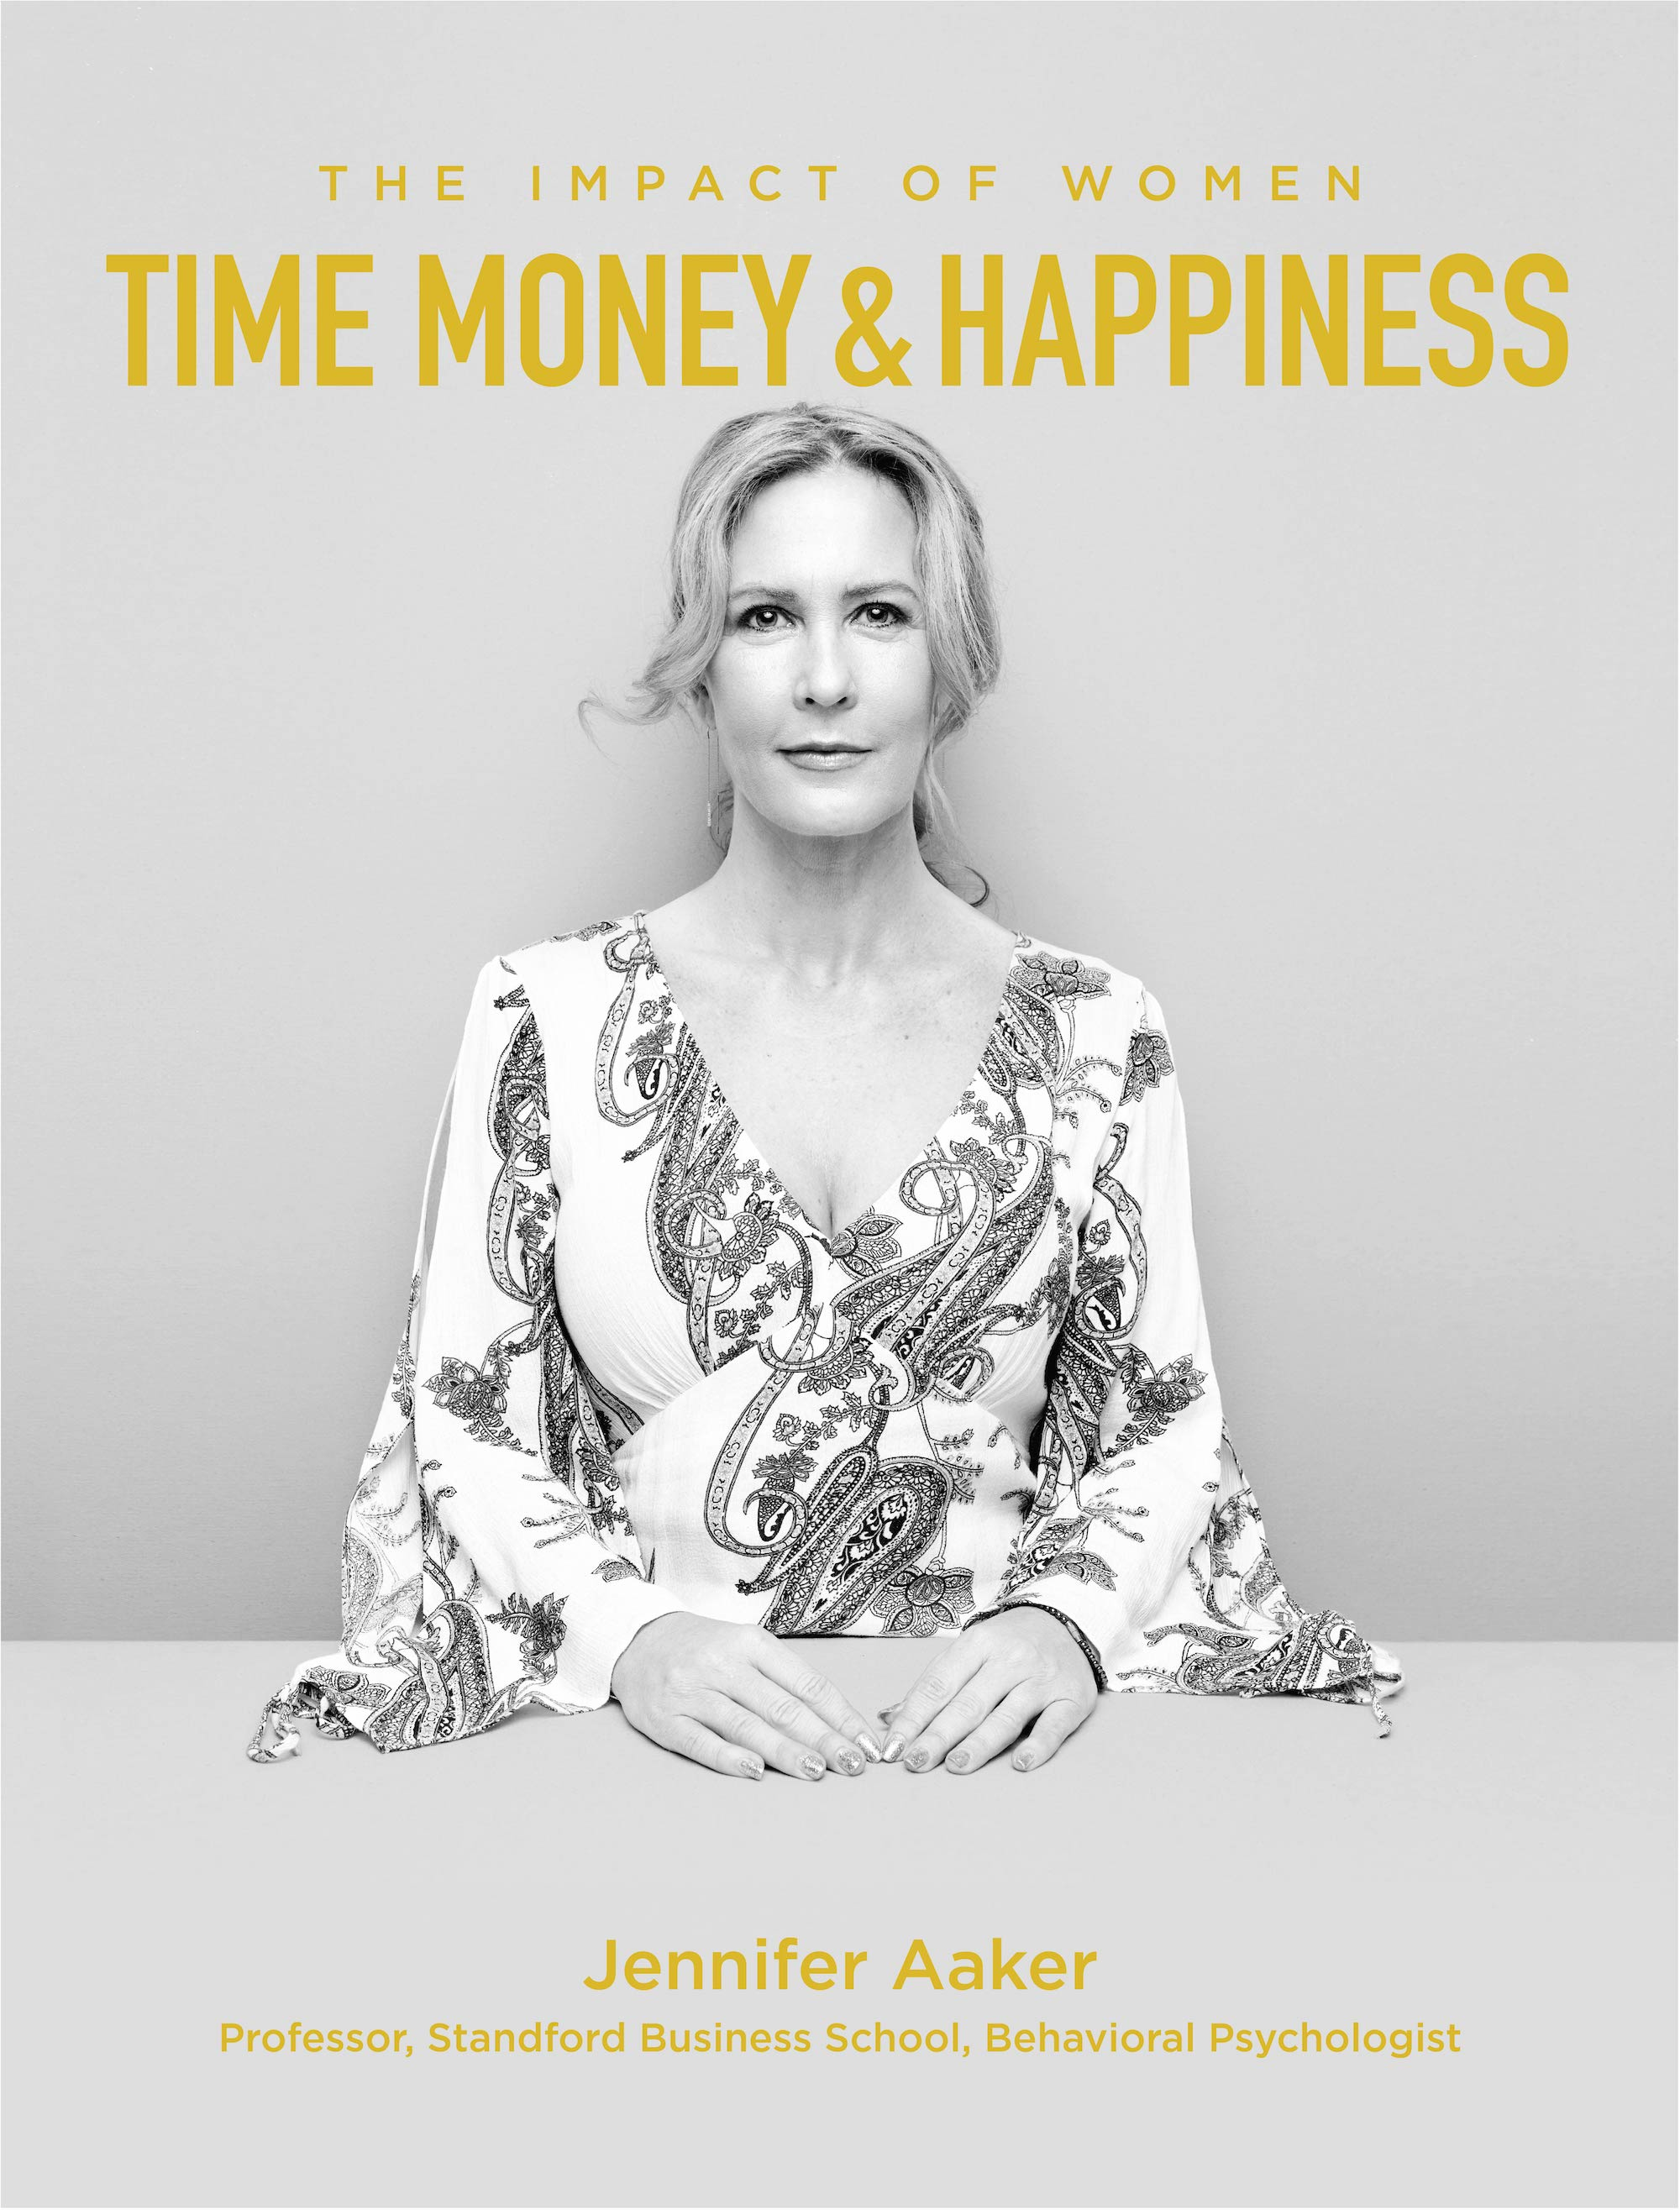 Dr Jennifer Aaker is About Time, Money and Happiness